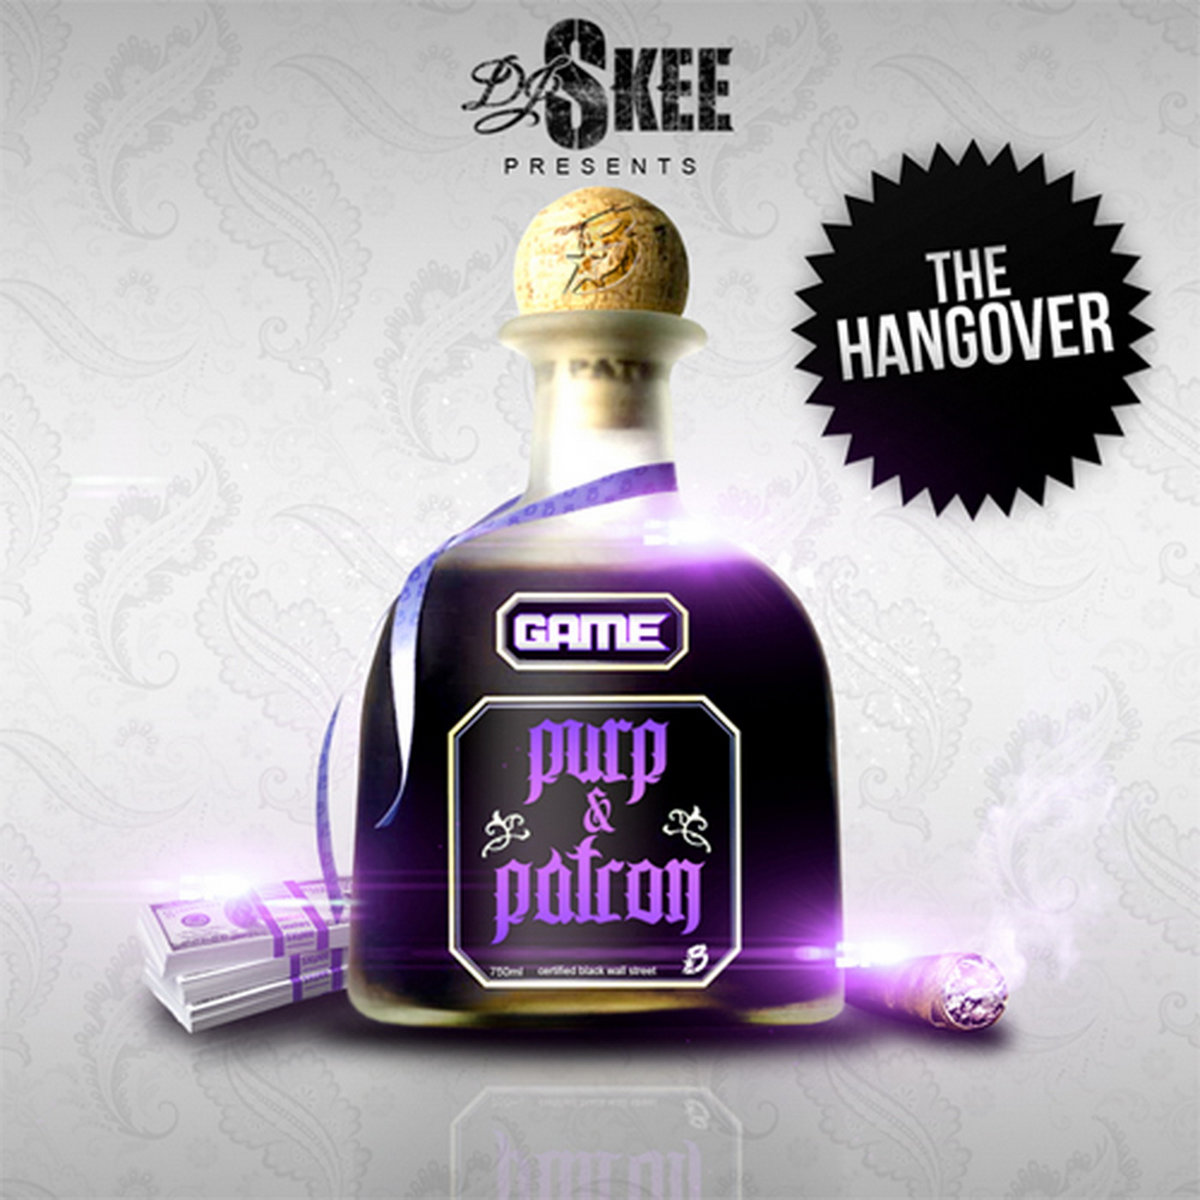 purp and patron